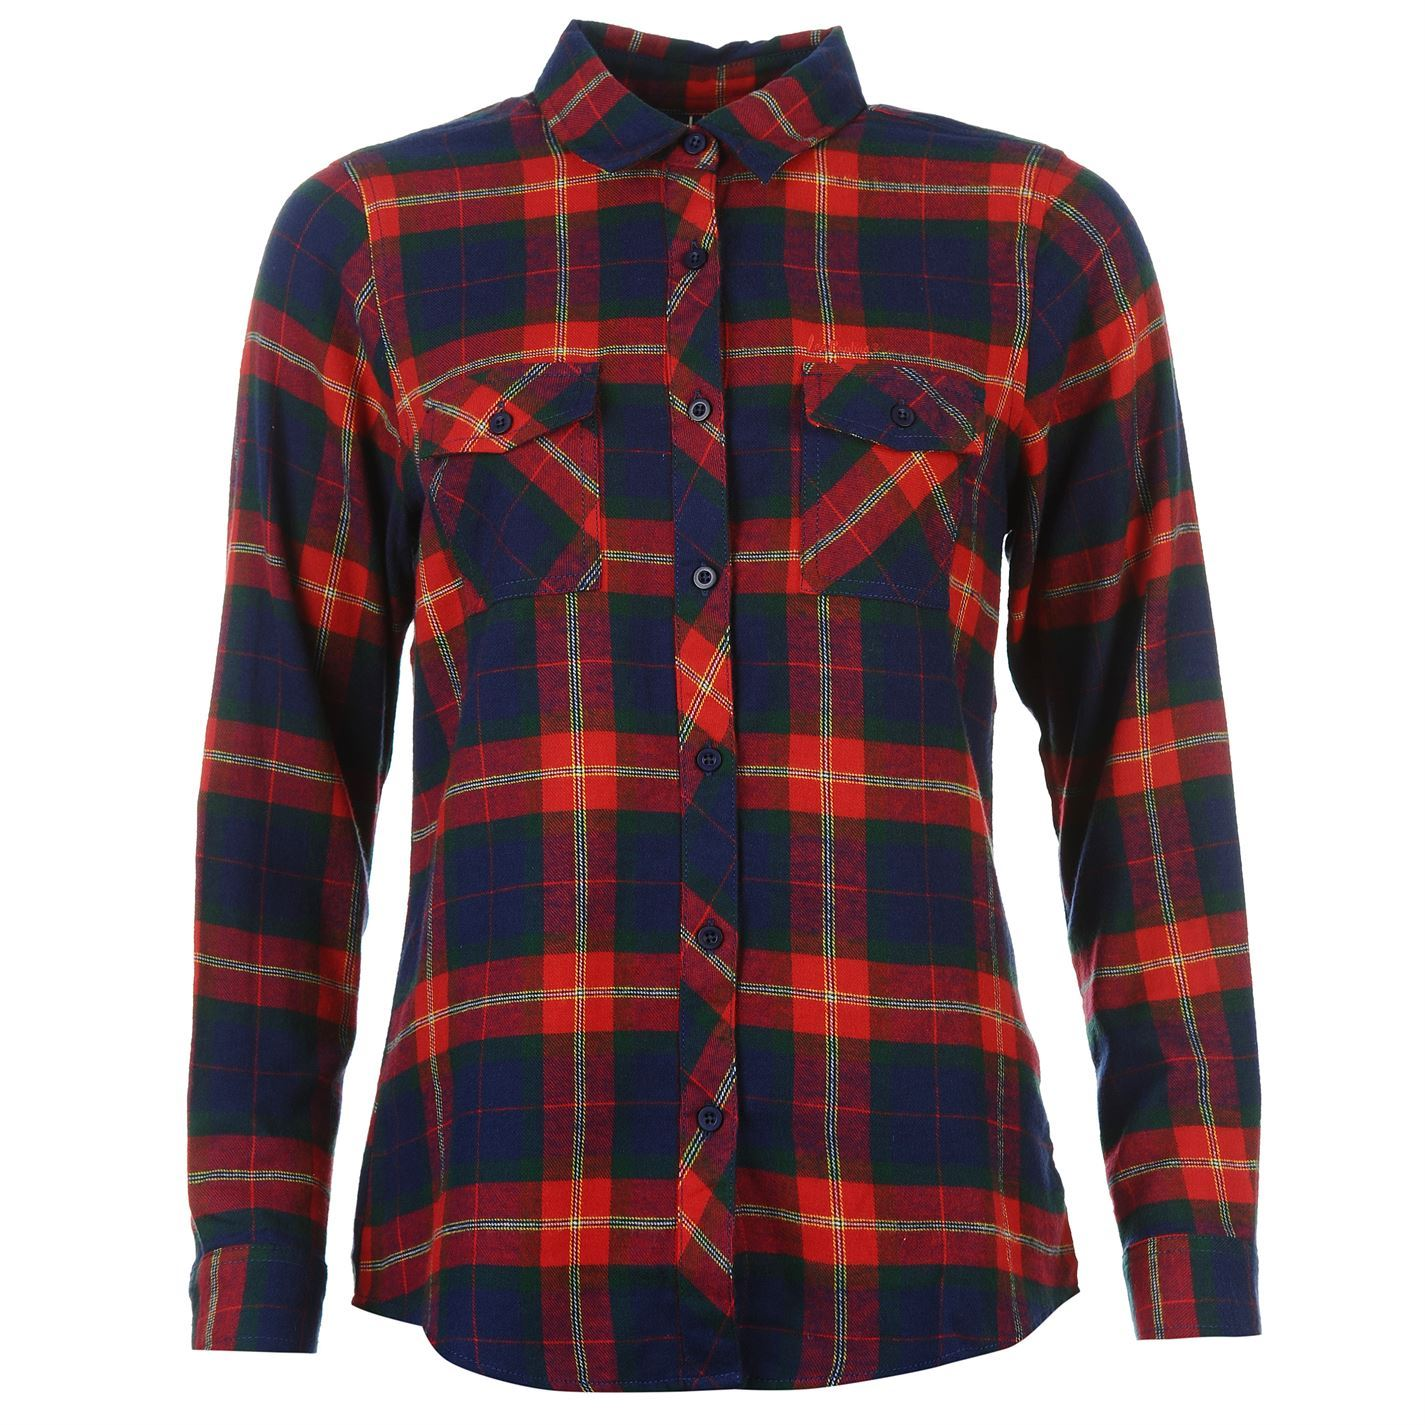 Oct 11, · 3. Match Womens Long Sleeve Flannel Plaid Shirt. Over 1, reviews and 4 stars! AND prices start at $!WHOA! What makes this better is the 40 color options (prices vary).